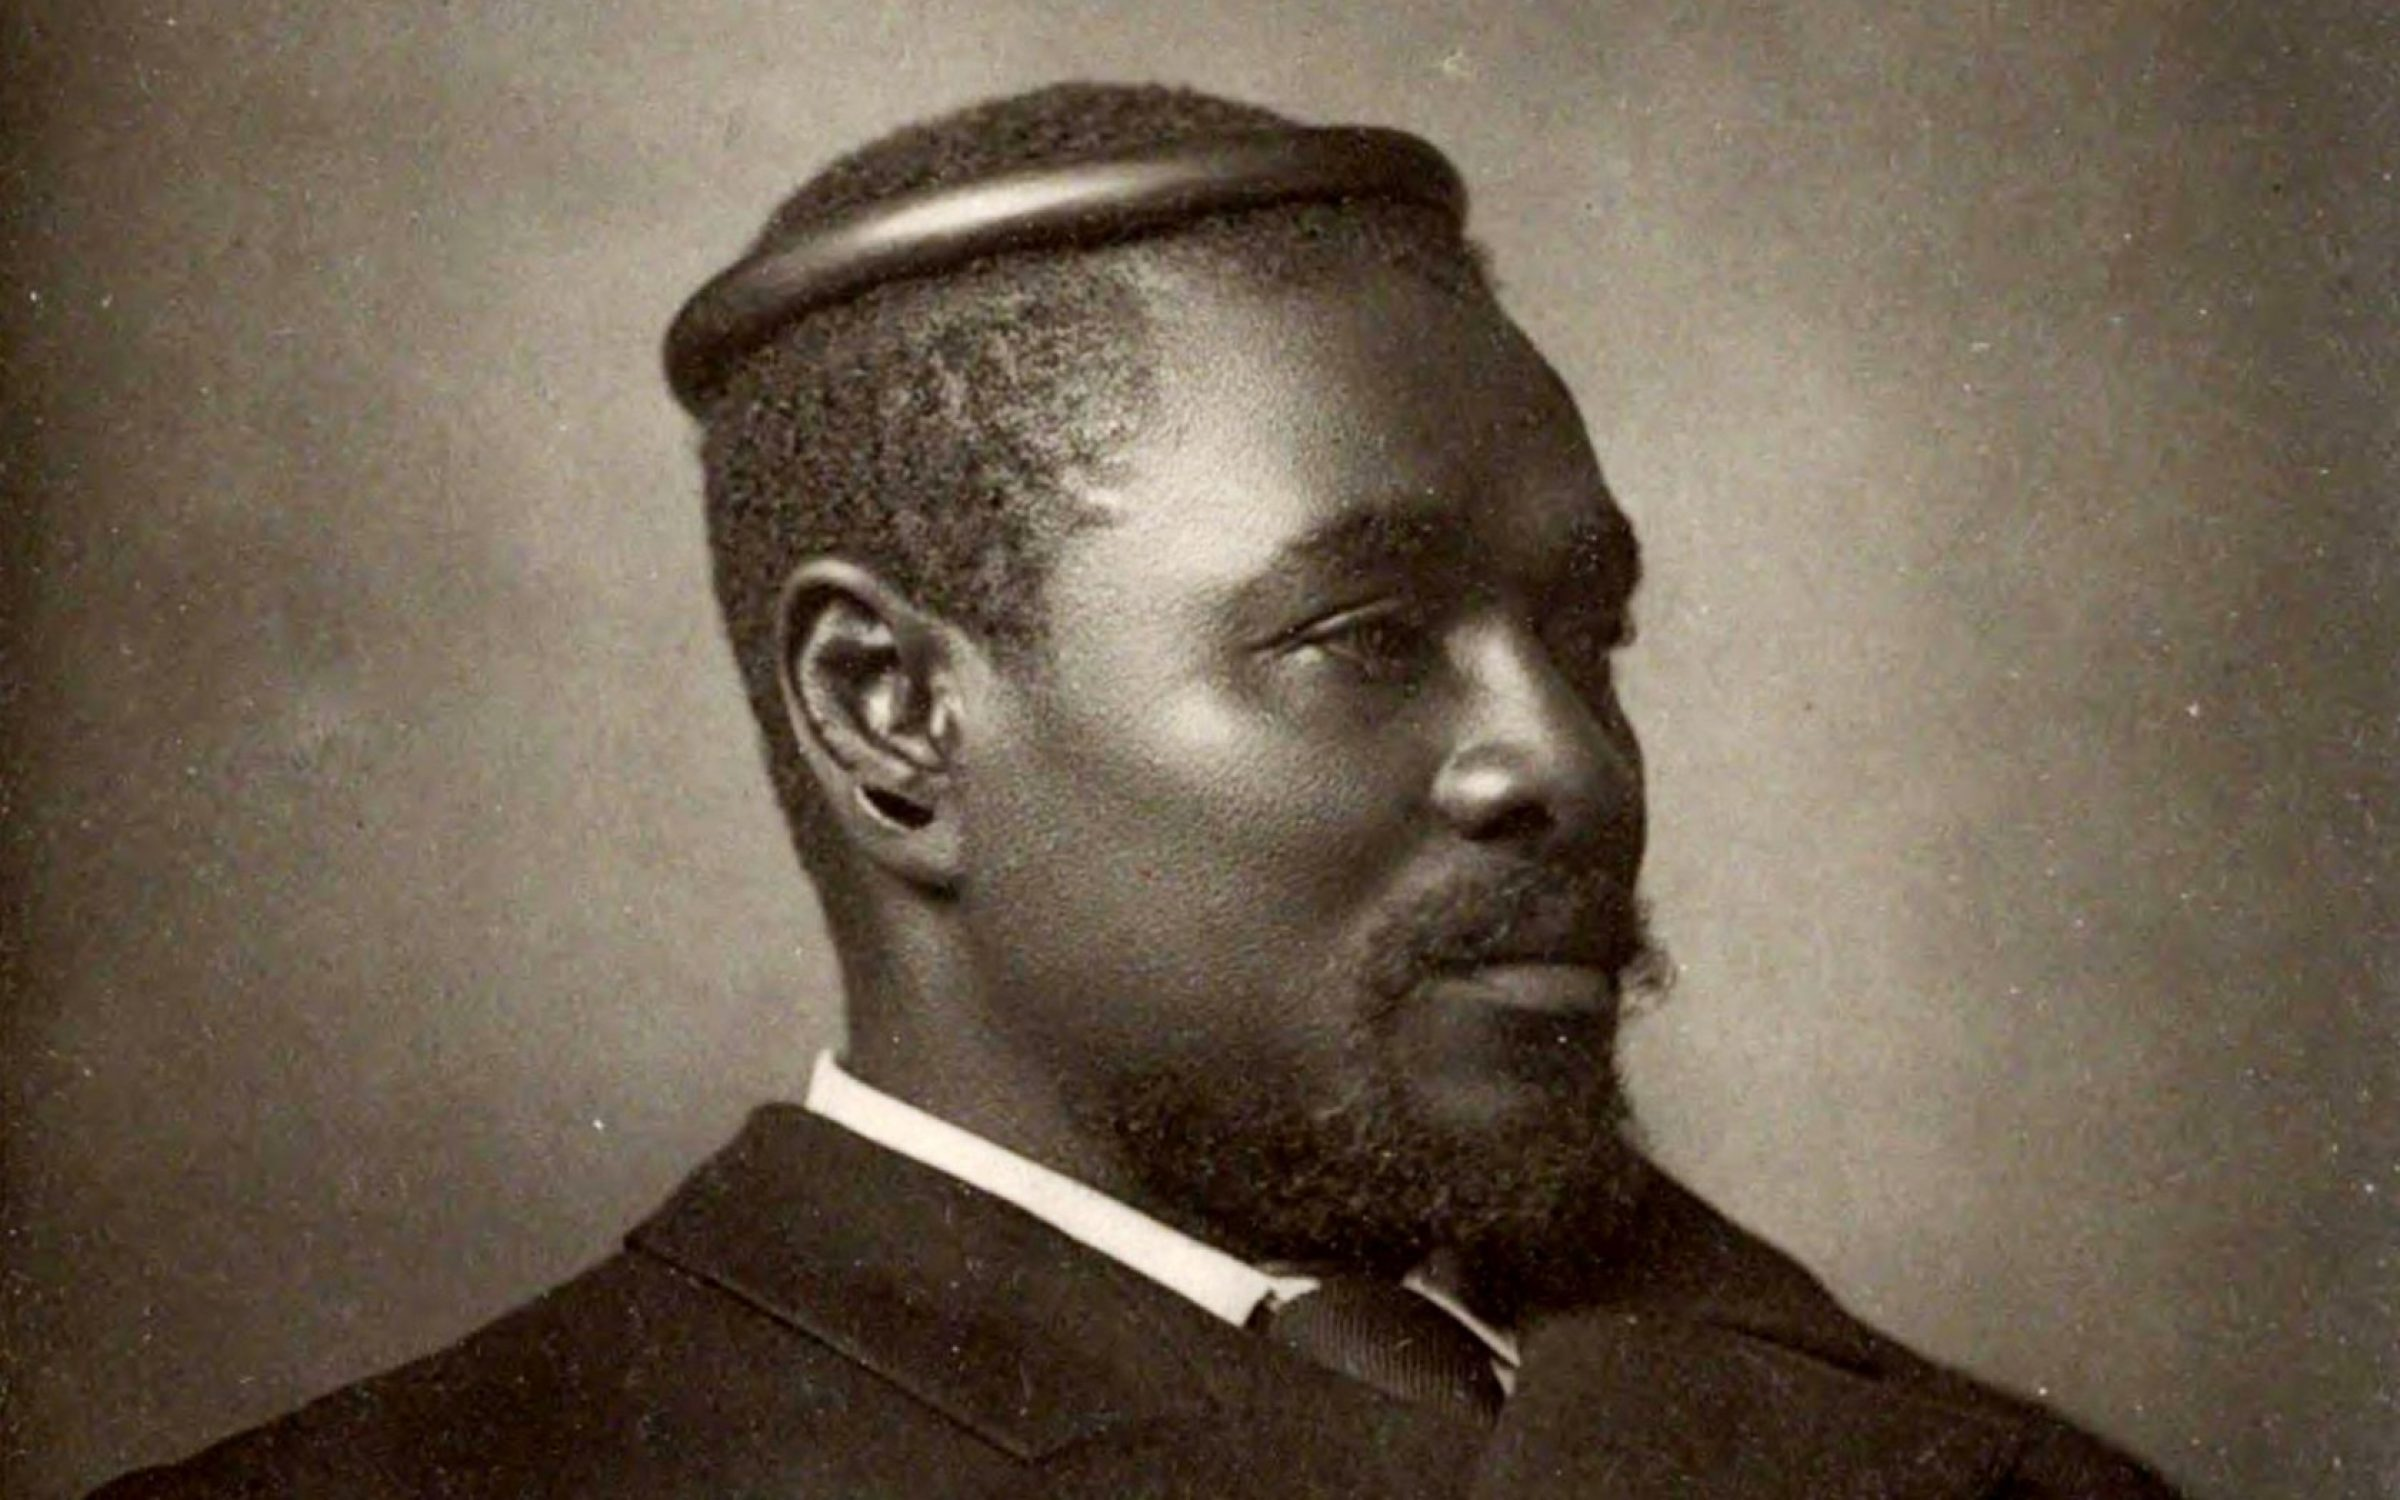 King Cetshwayo photographed by Alexander Bassano on Bond Street, London (1885). Credit: Wikimedia Commons.